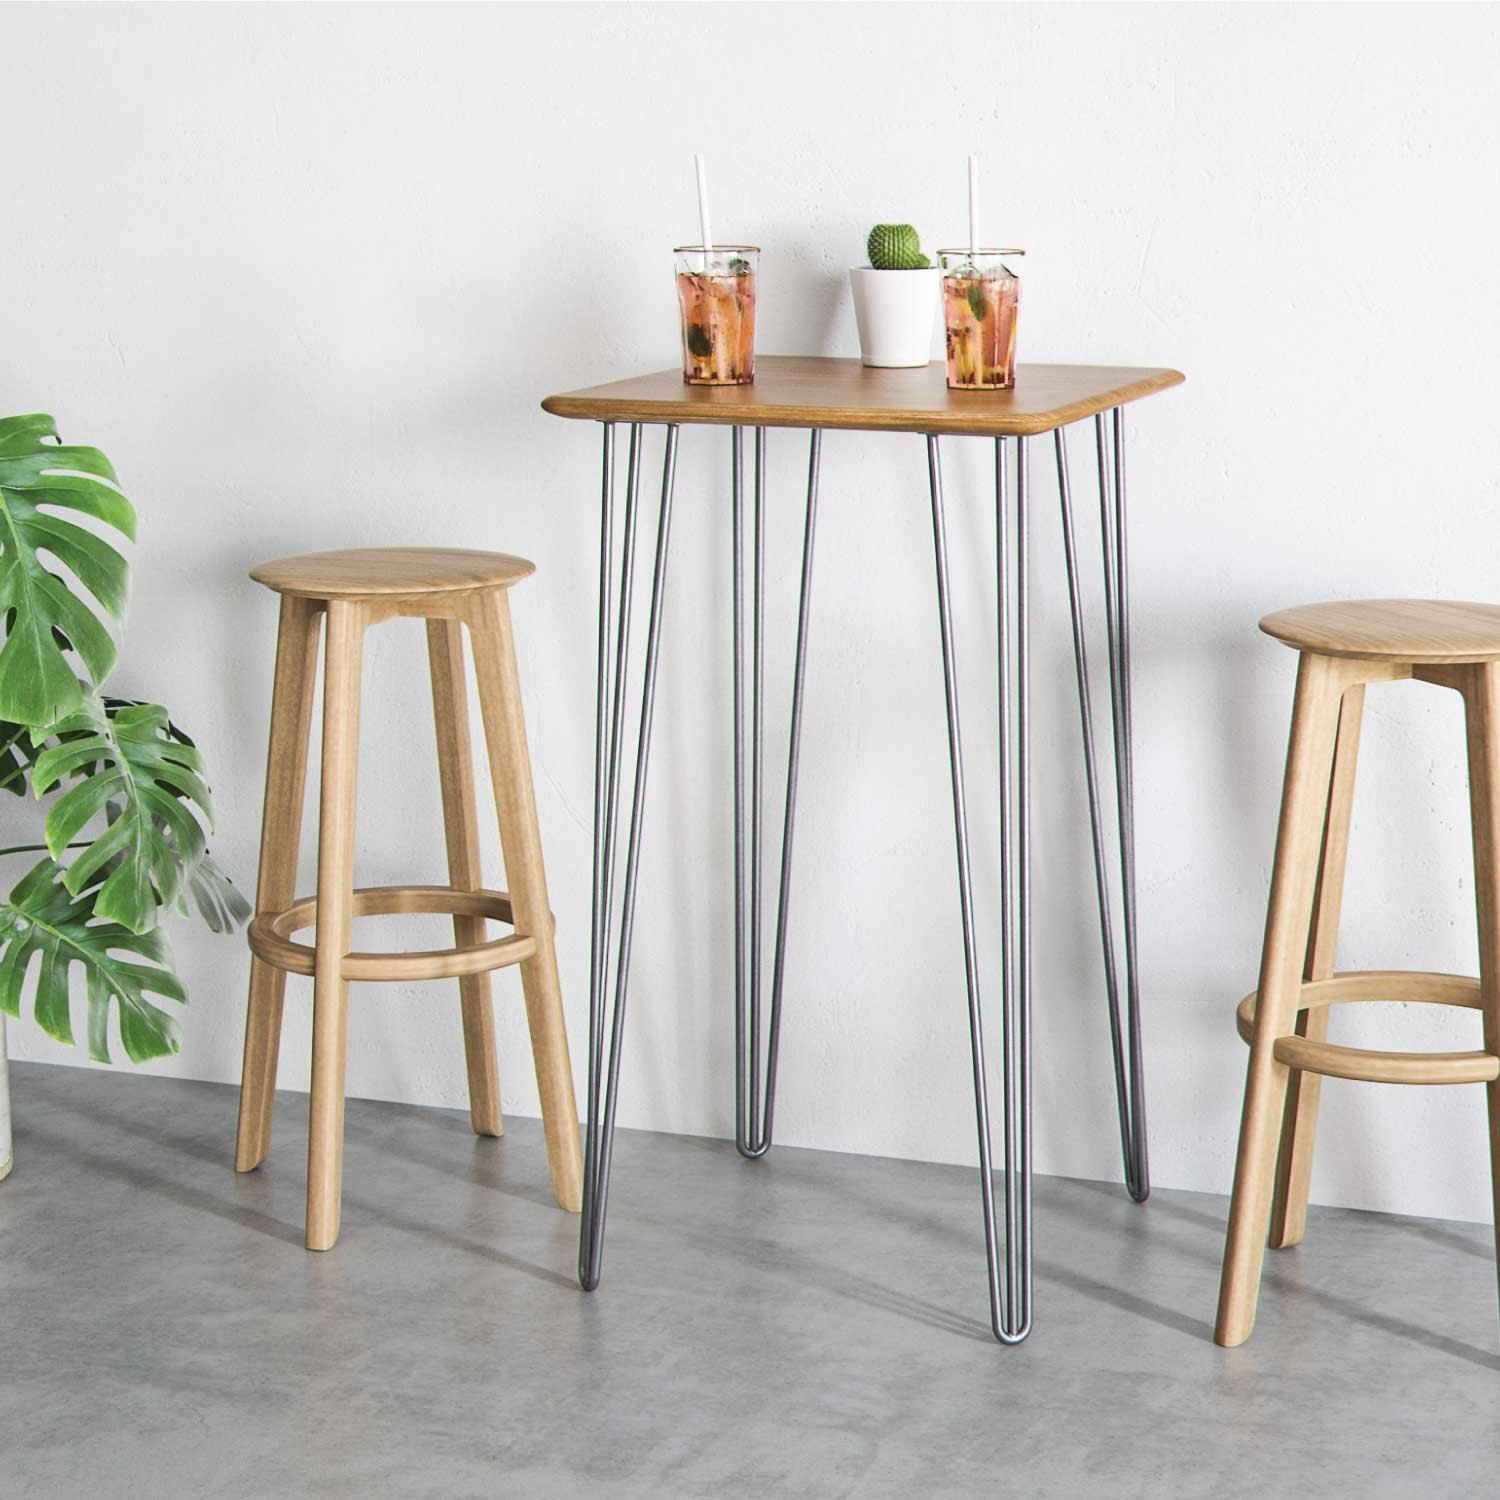 4 x Heavy Duty Hairpin Table Legs – Superior Double Weld Steel Construction With Free Screws, Build Guide & Protector Feet, Worth $10! – Mid-Century Modern Style – 16'' To 40'', All Finishes (1/2 inch) by The Hairpin Leg Co. (Image #3)